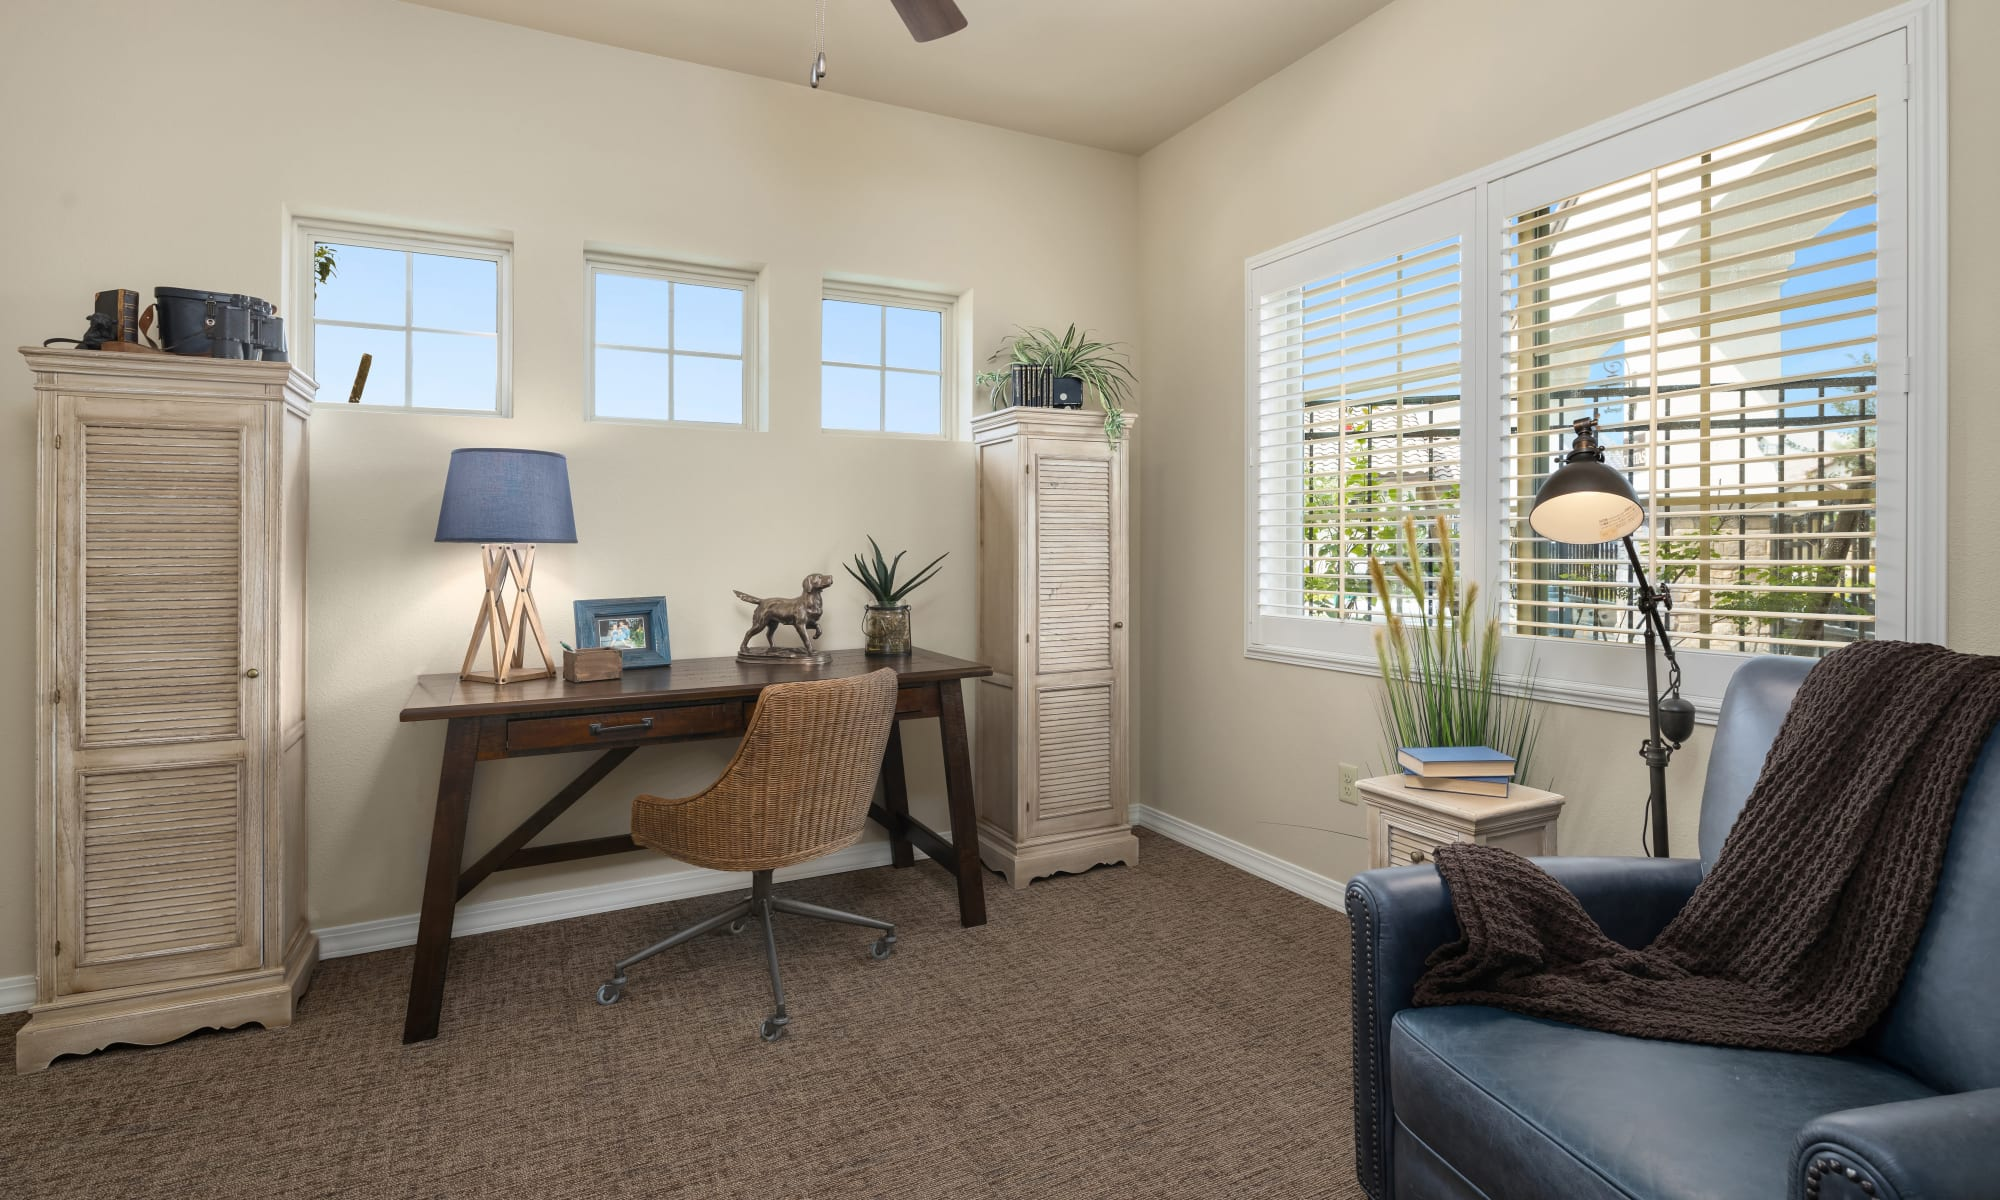 Bedroom at The Park at Surprise Independent Living Community, in Surprise, Arizona